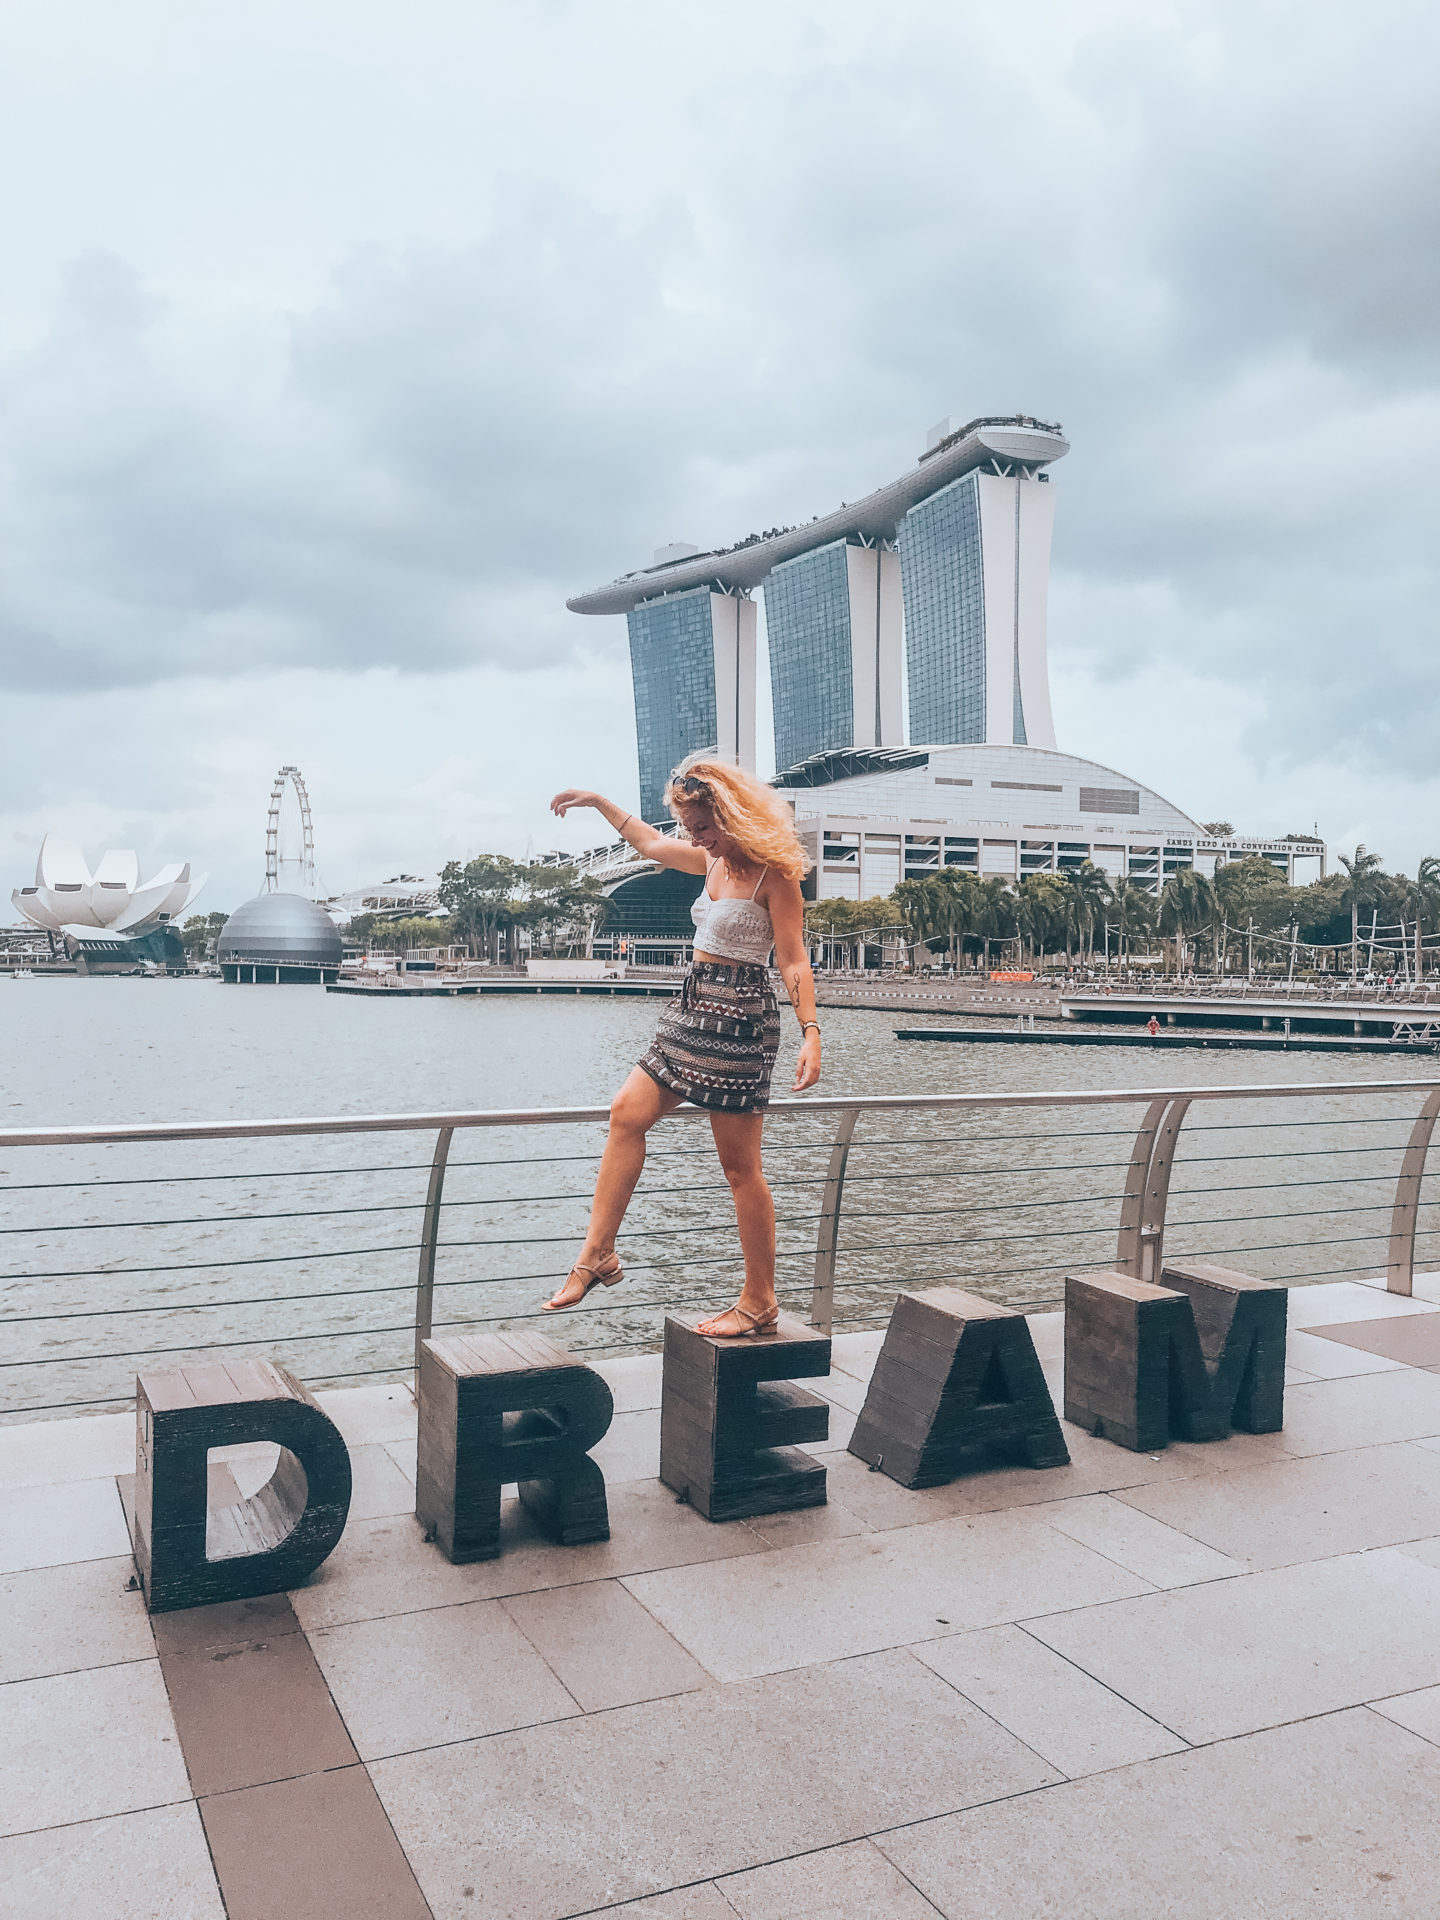 Dream sign in Marina Bay, instagrammable spot in Singapore